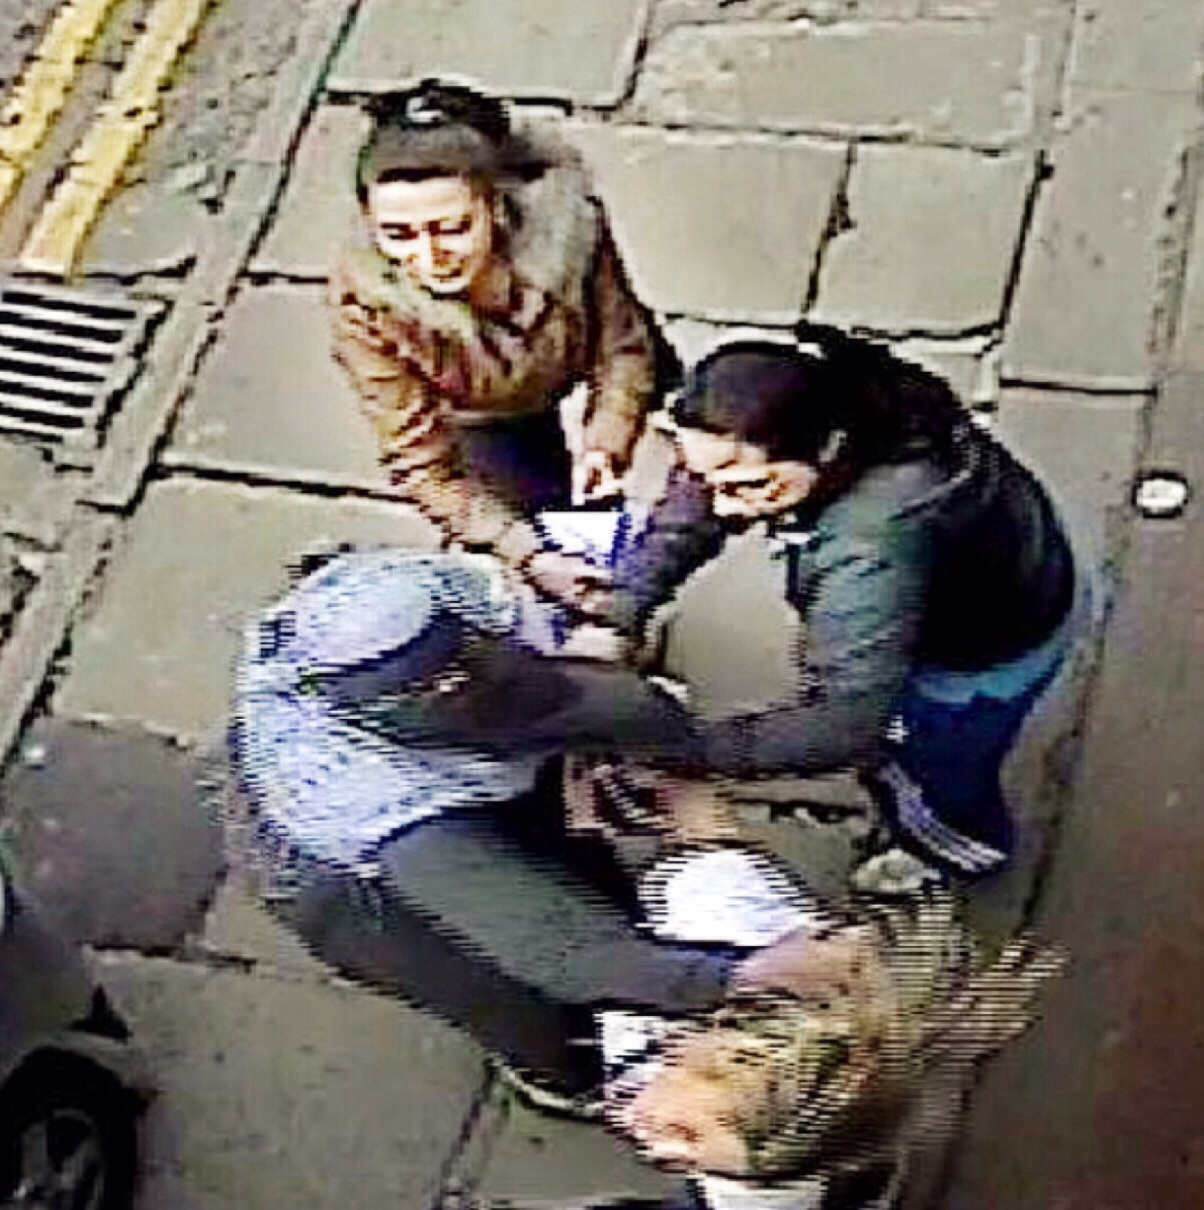 A still from The CCTV footage shies the attack